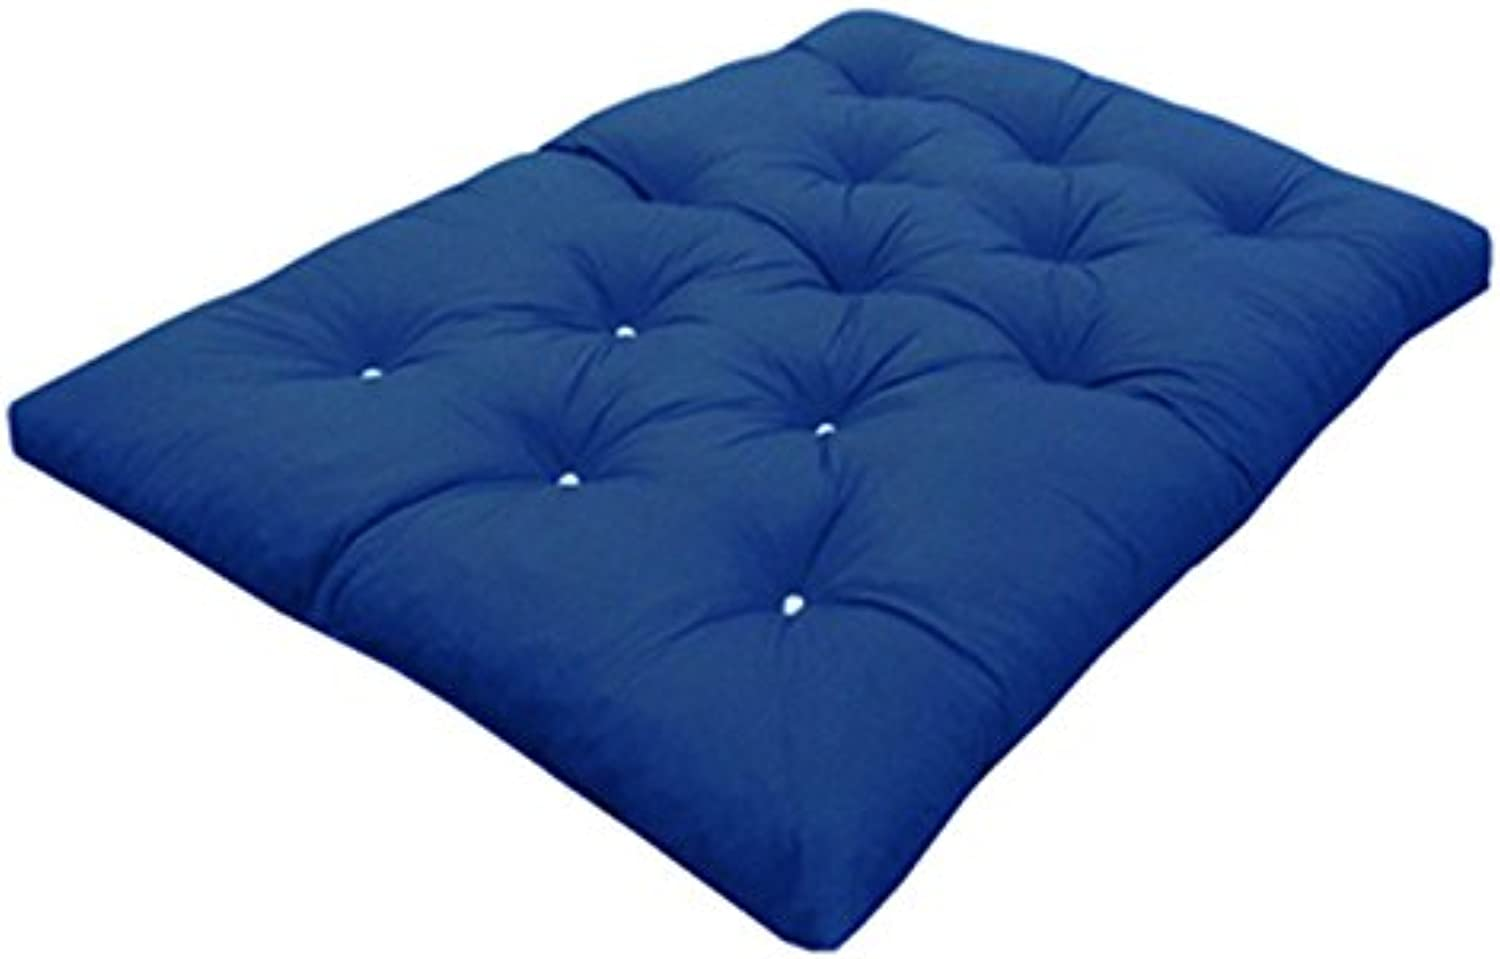 My Layabout Double   2 Seater   Memory Foam Futon Mattress   Roll Out Bed   Guest Bed   Dark bluee   190cm x 125cm   UK Manufactured   9 Colours Available   3